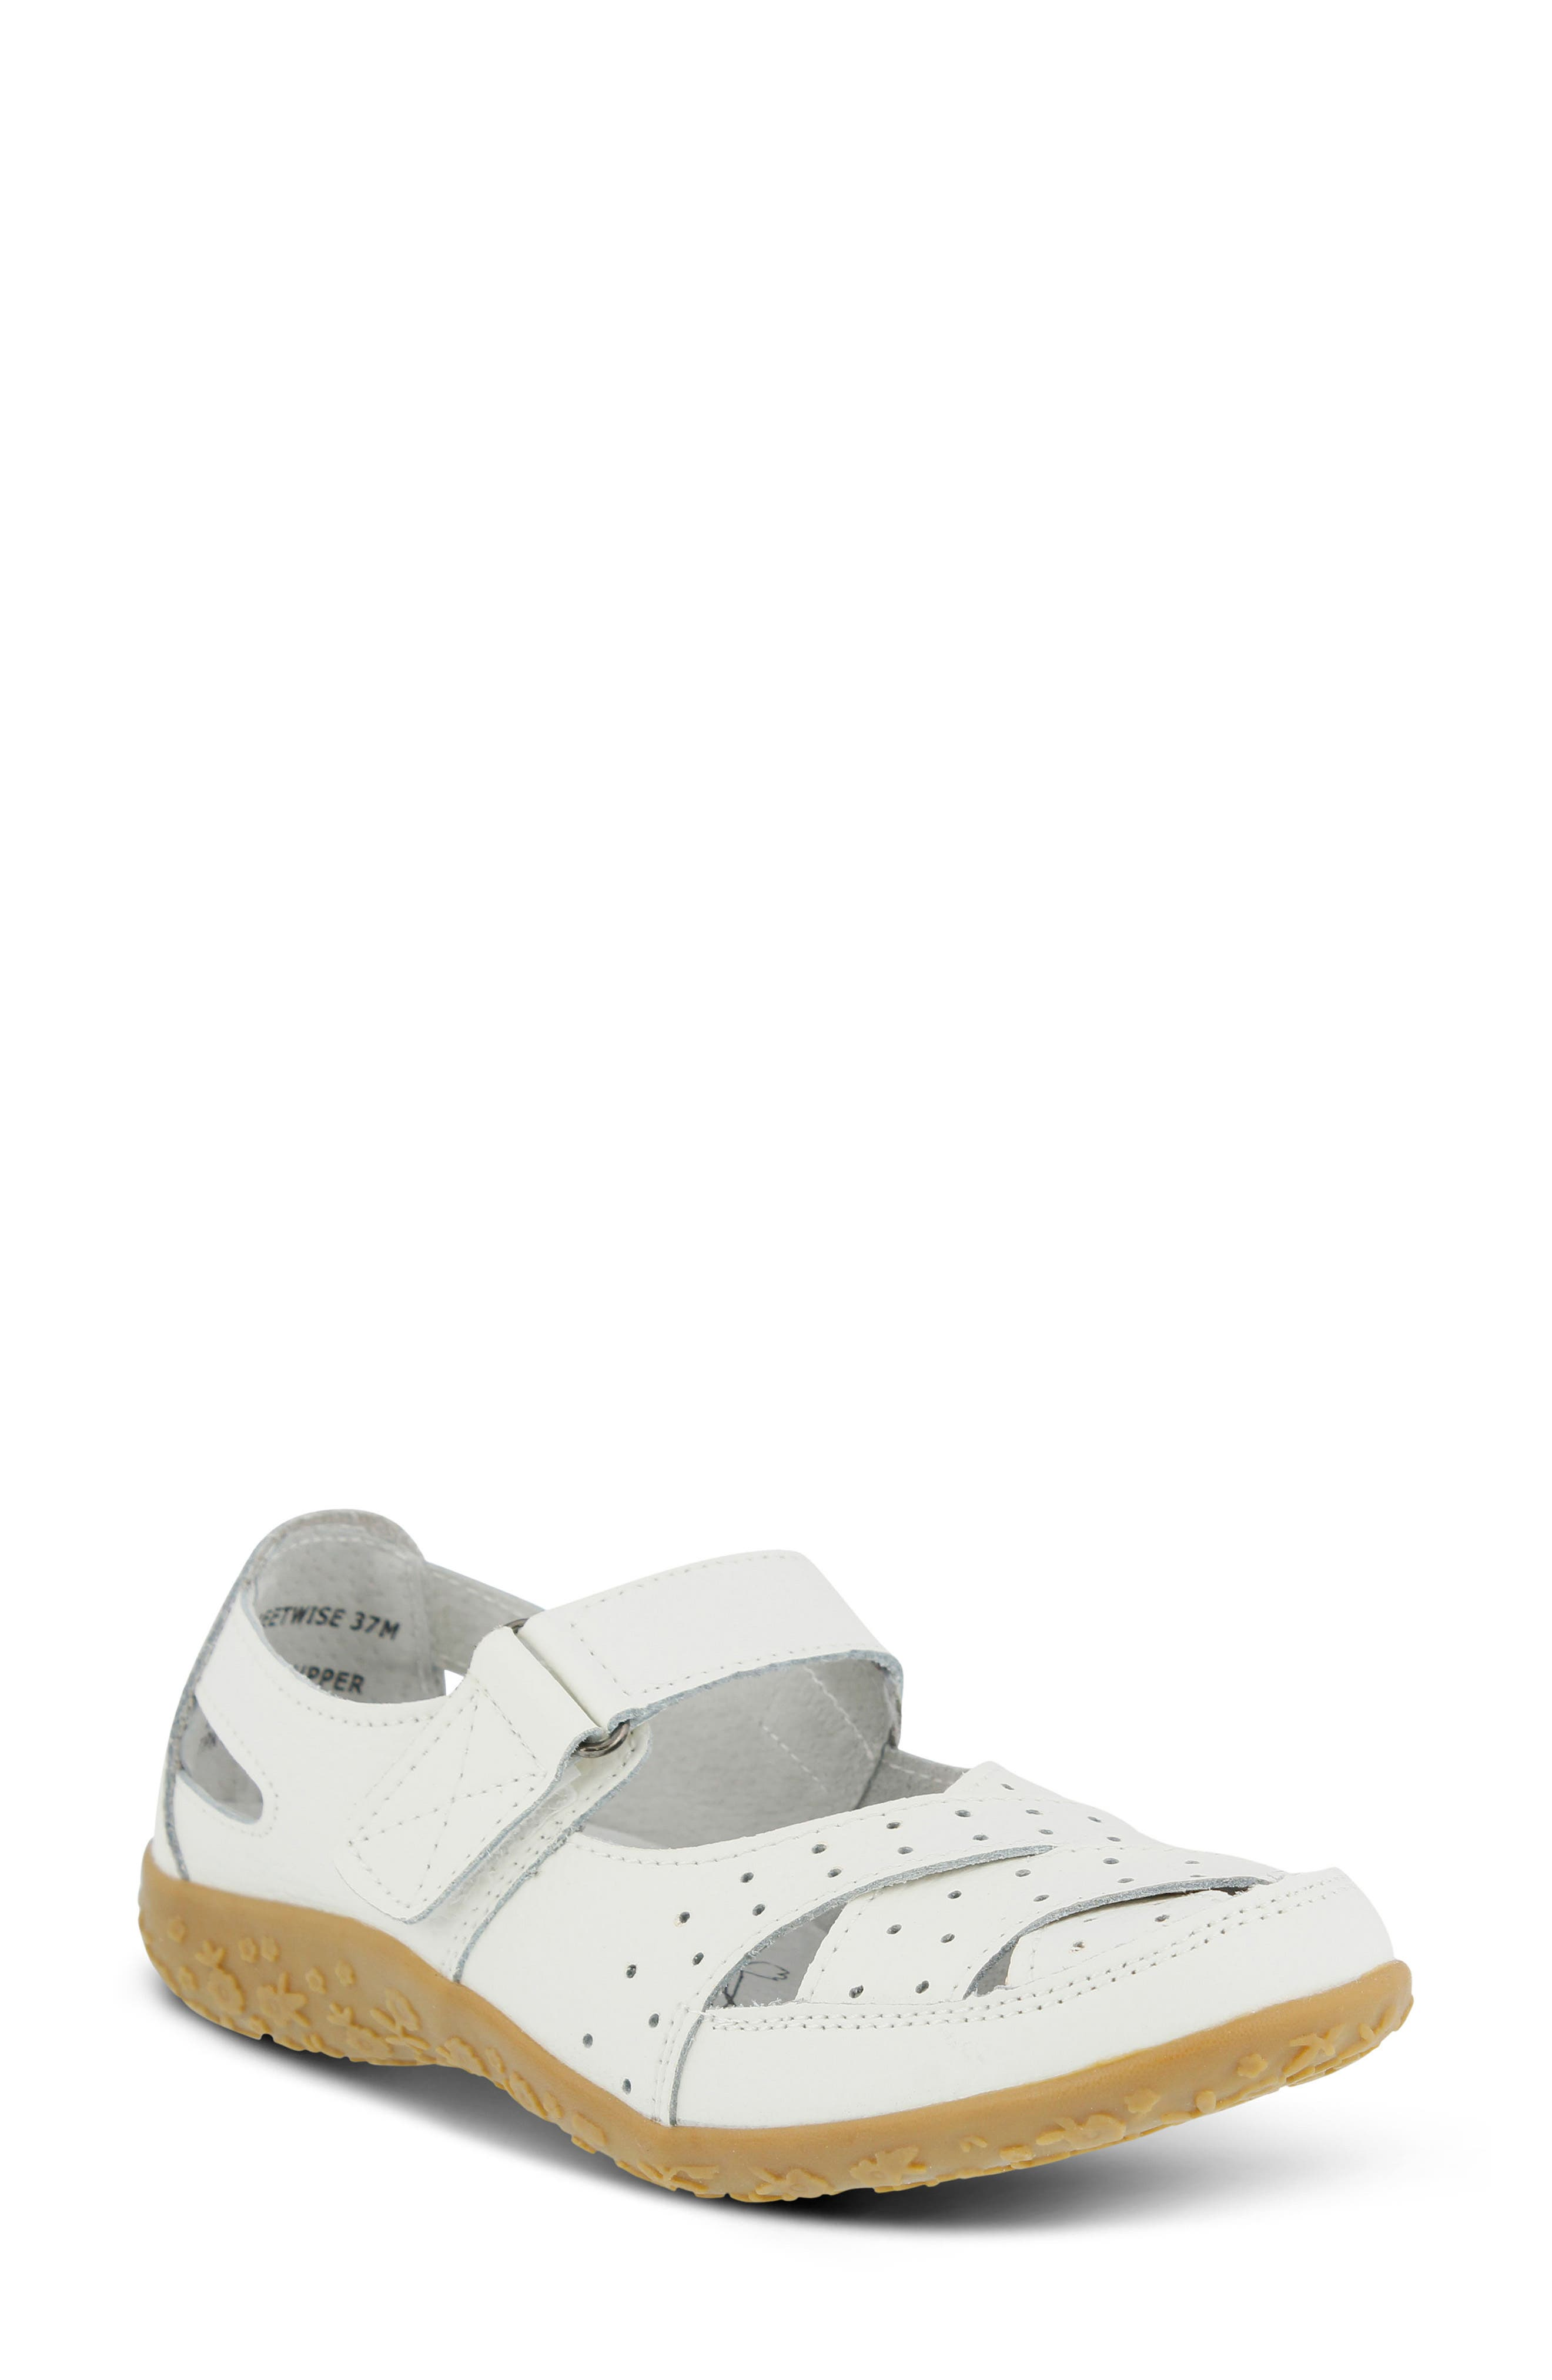 Streetwise Flat,                         Main,                         color, White Leather